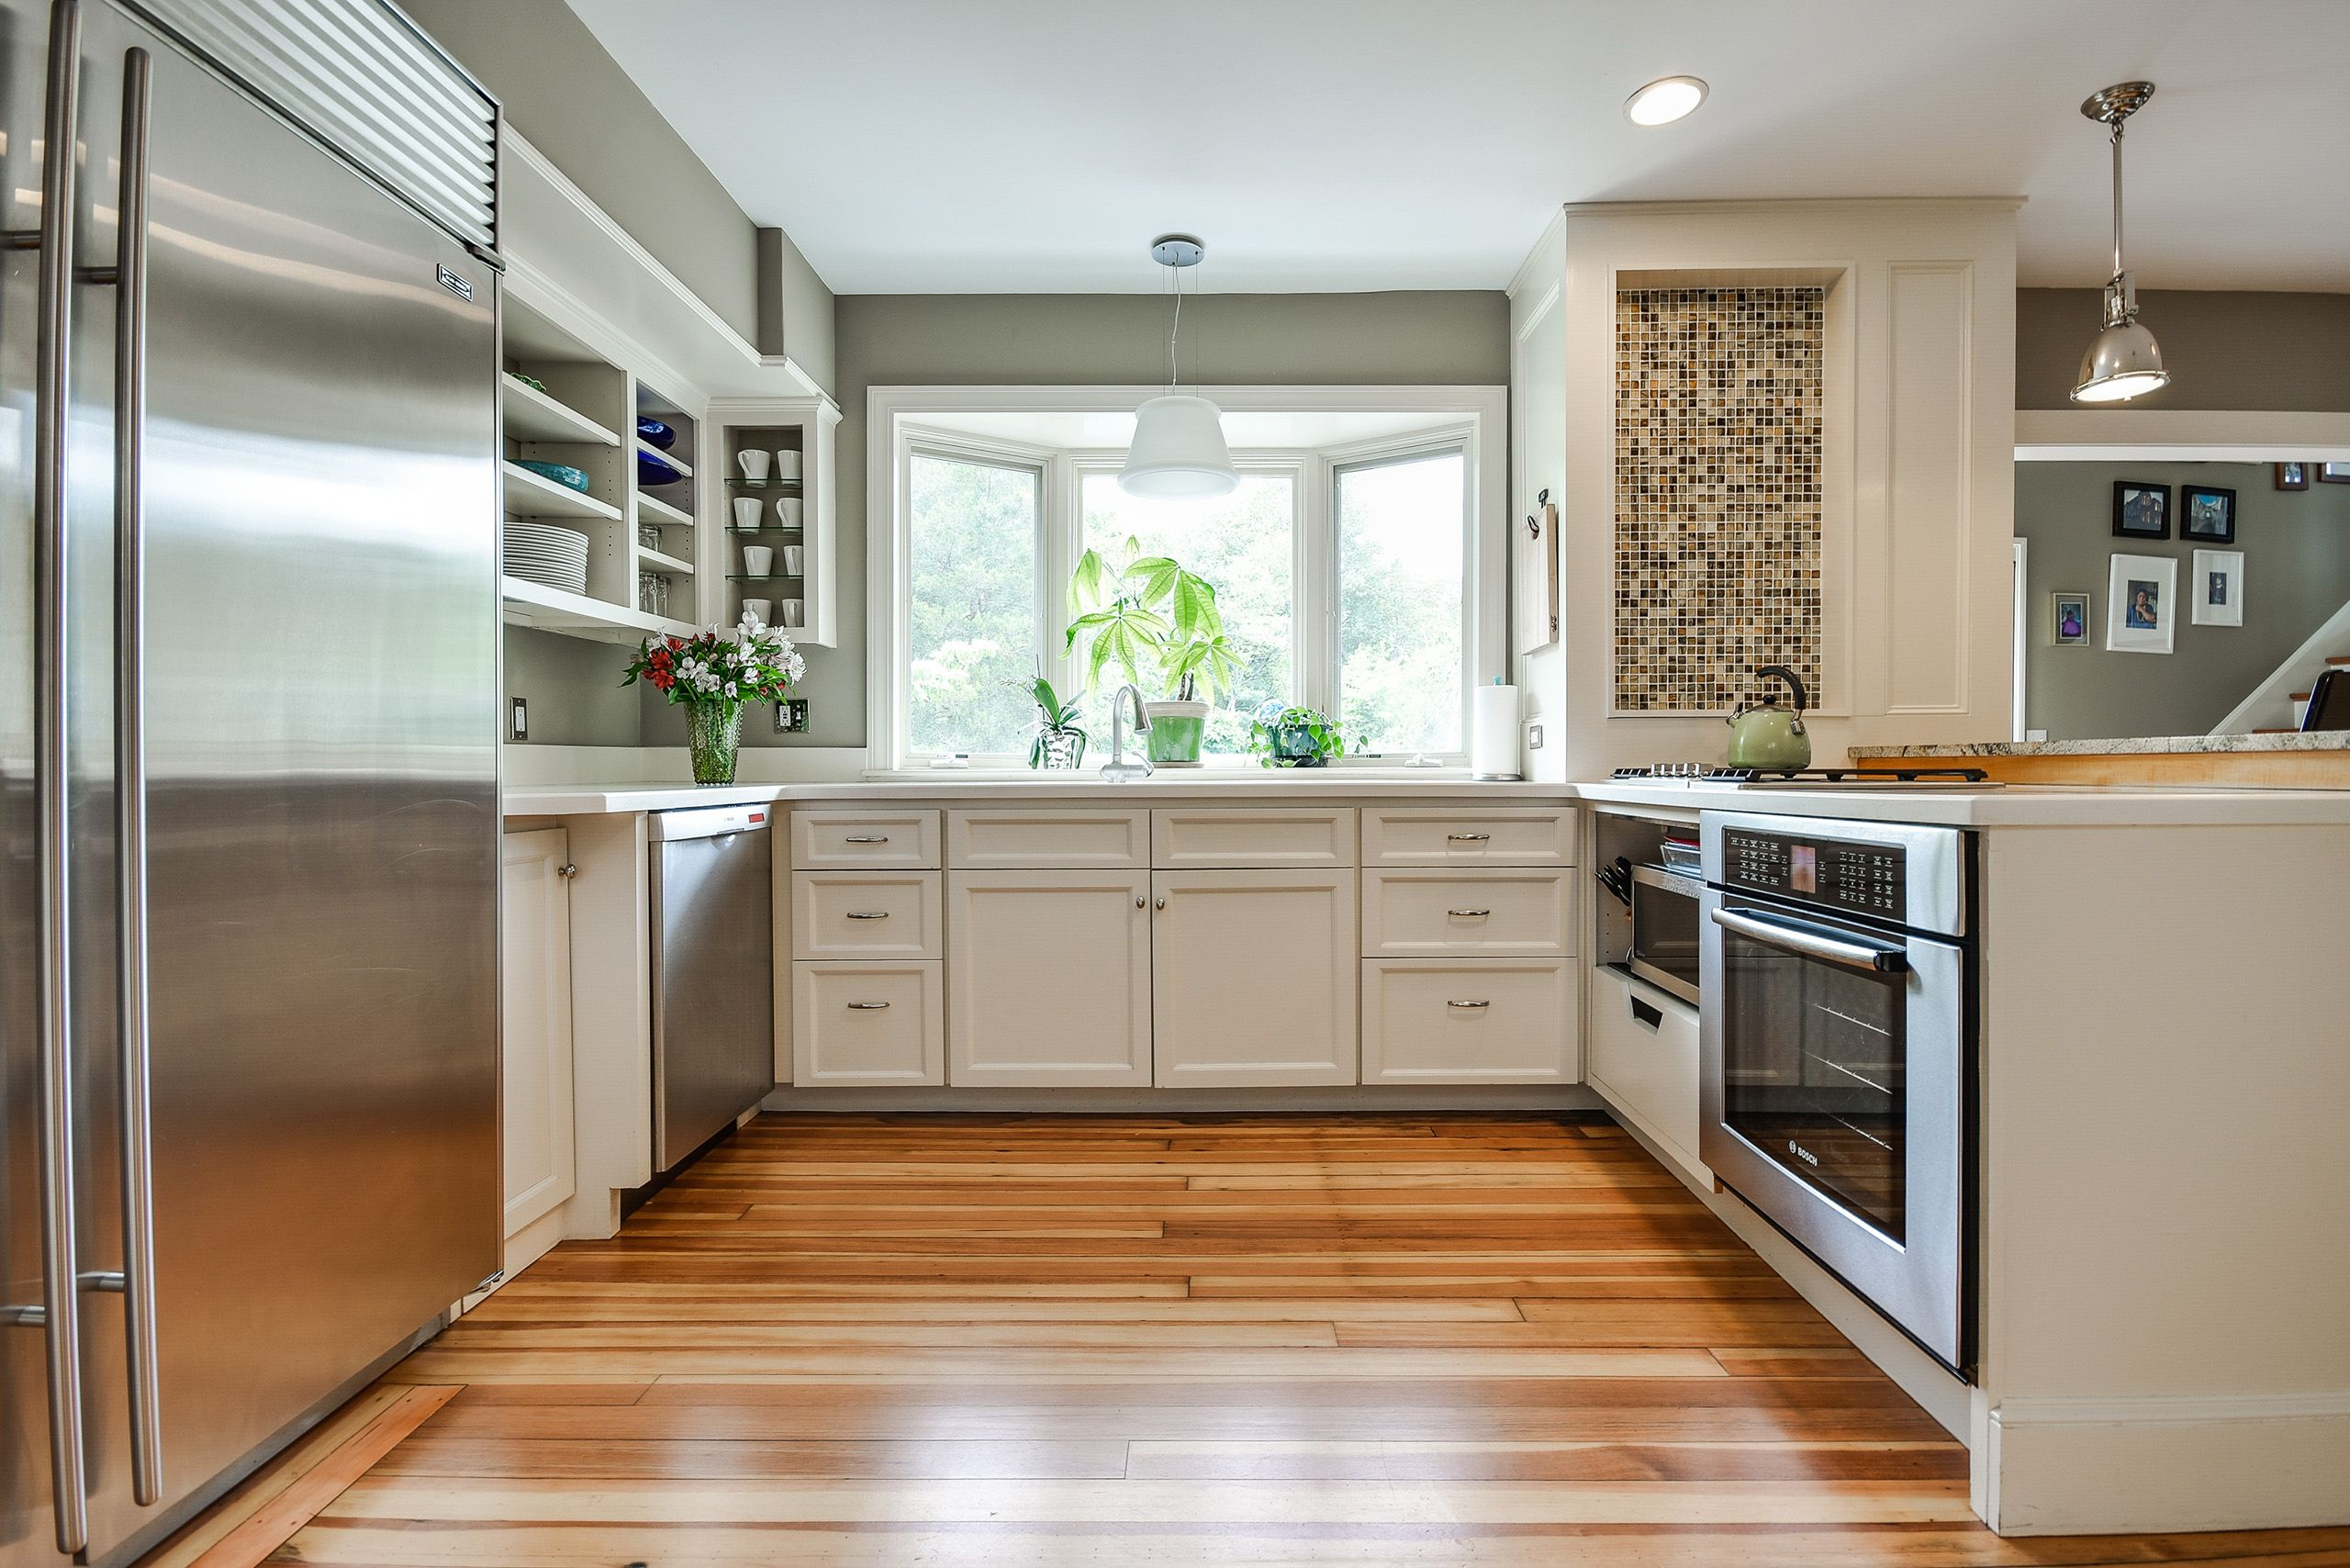 WestMainResidence-WestboroughMA-Kitchen.jpg